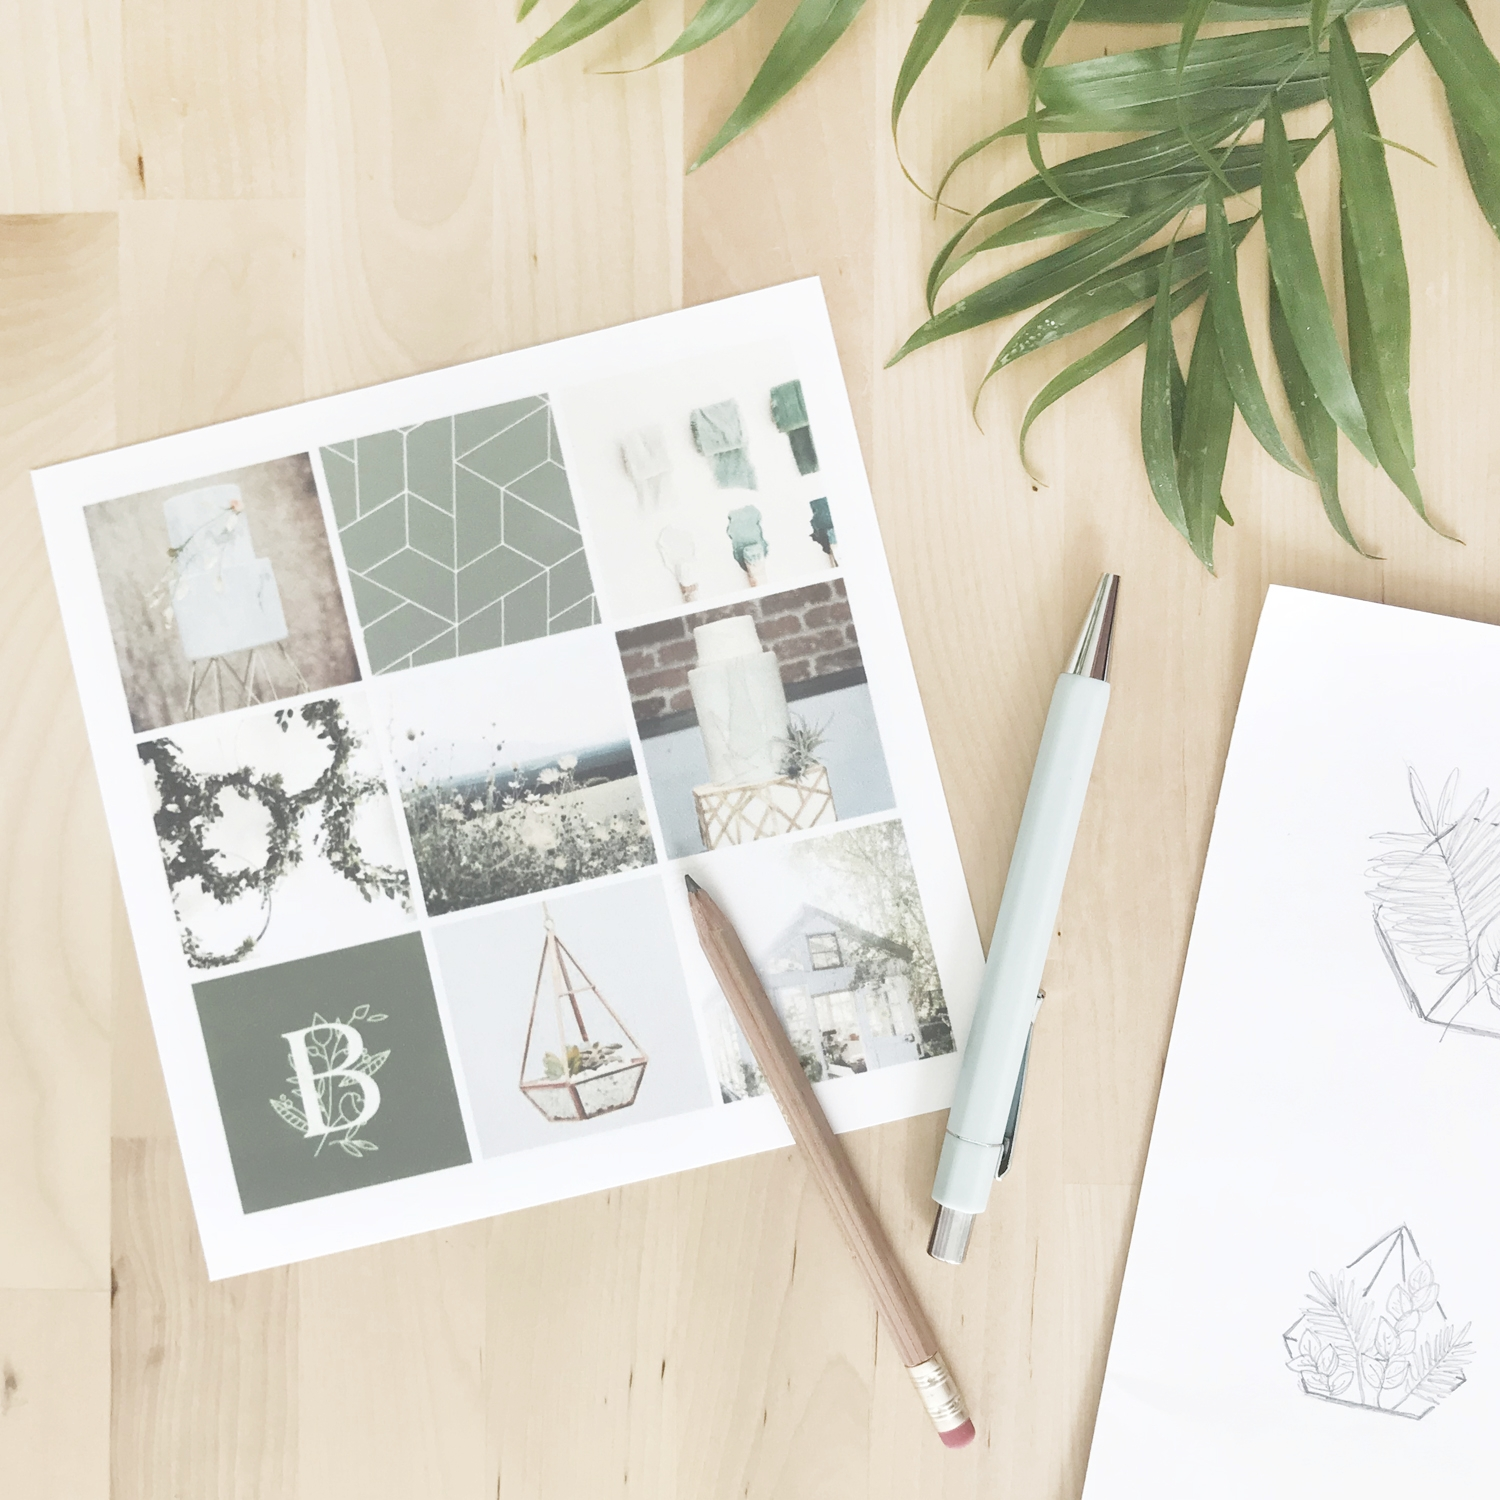 Bea & Bloom Creative Design Studio - Brand Identities and Logo Design for Small Business Owners and Creatives